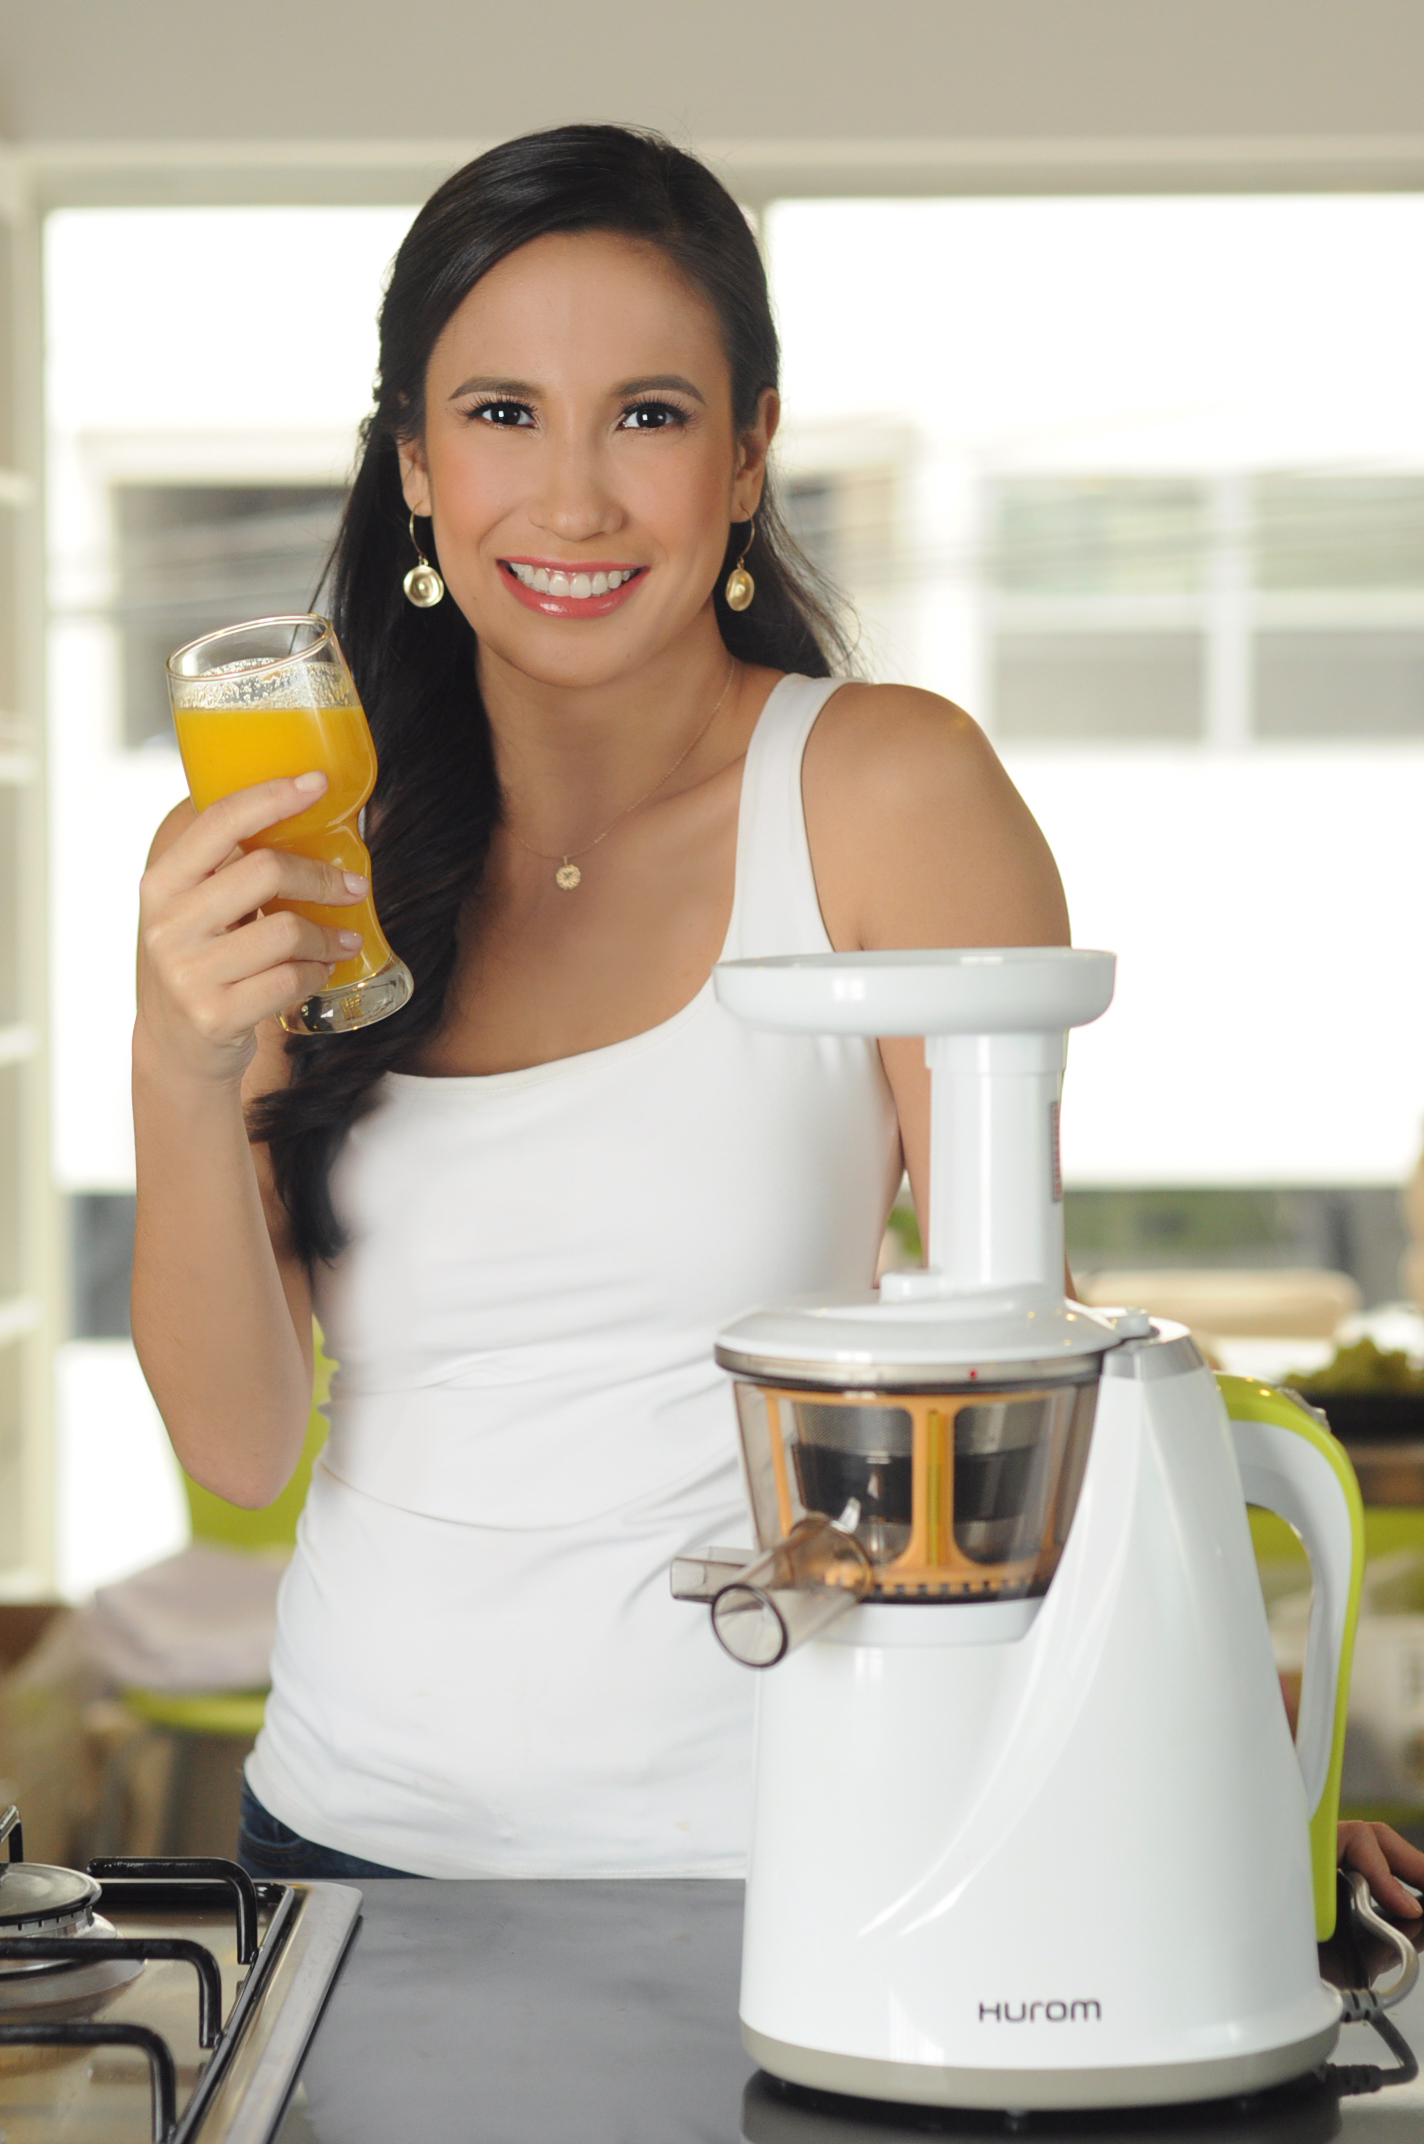 The Hurom Slow Juicer